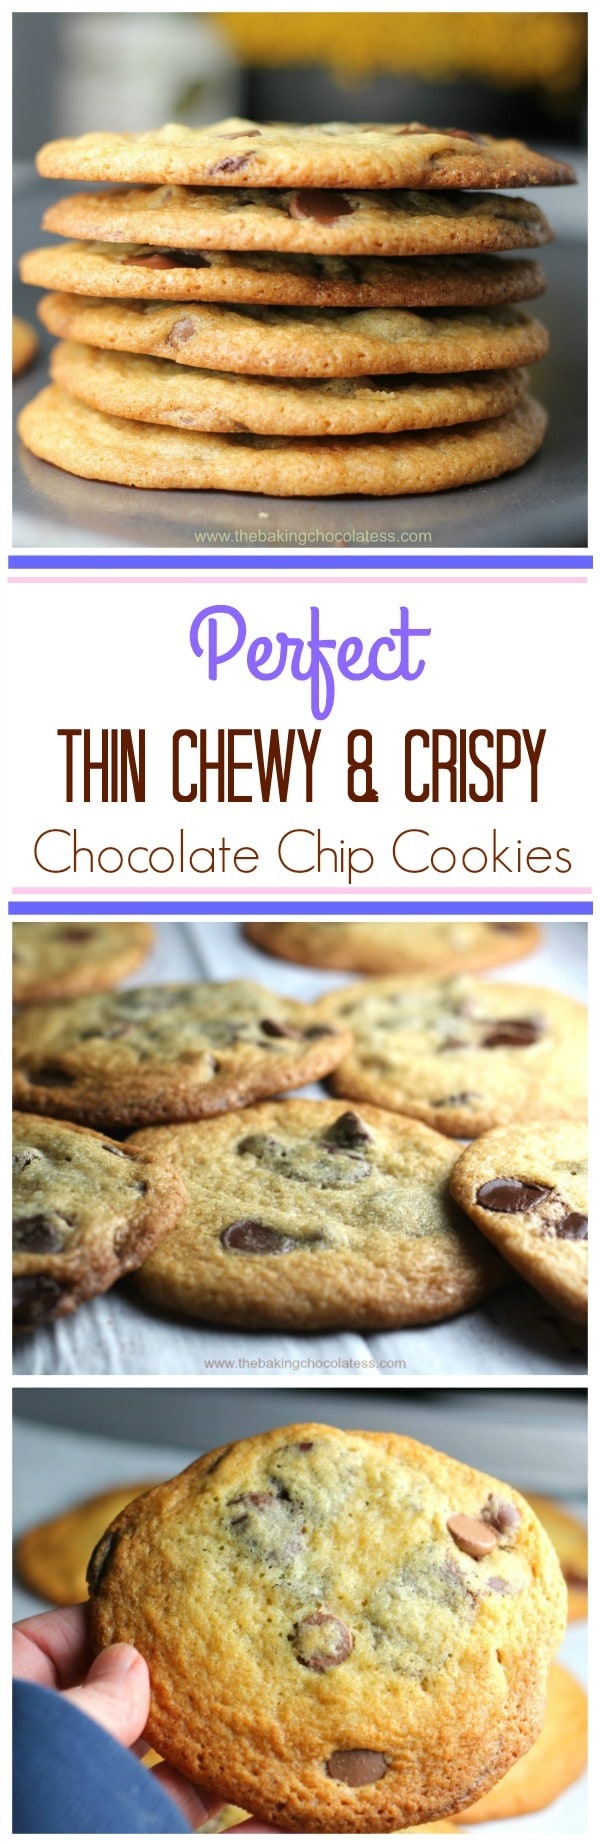 Best Thin & Crispy Chocolate Chip Cookies